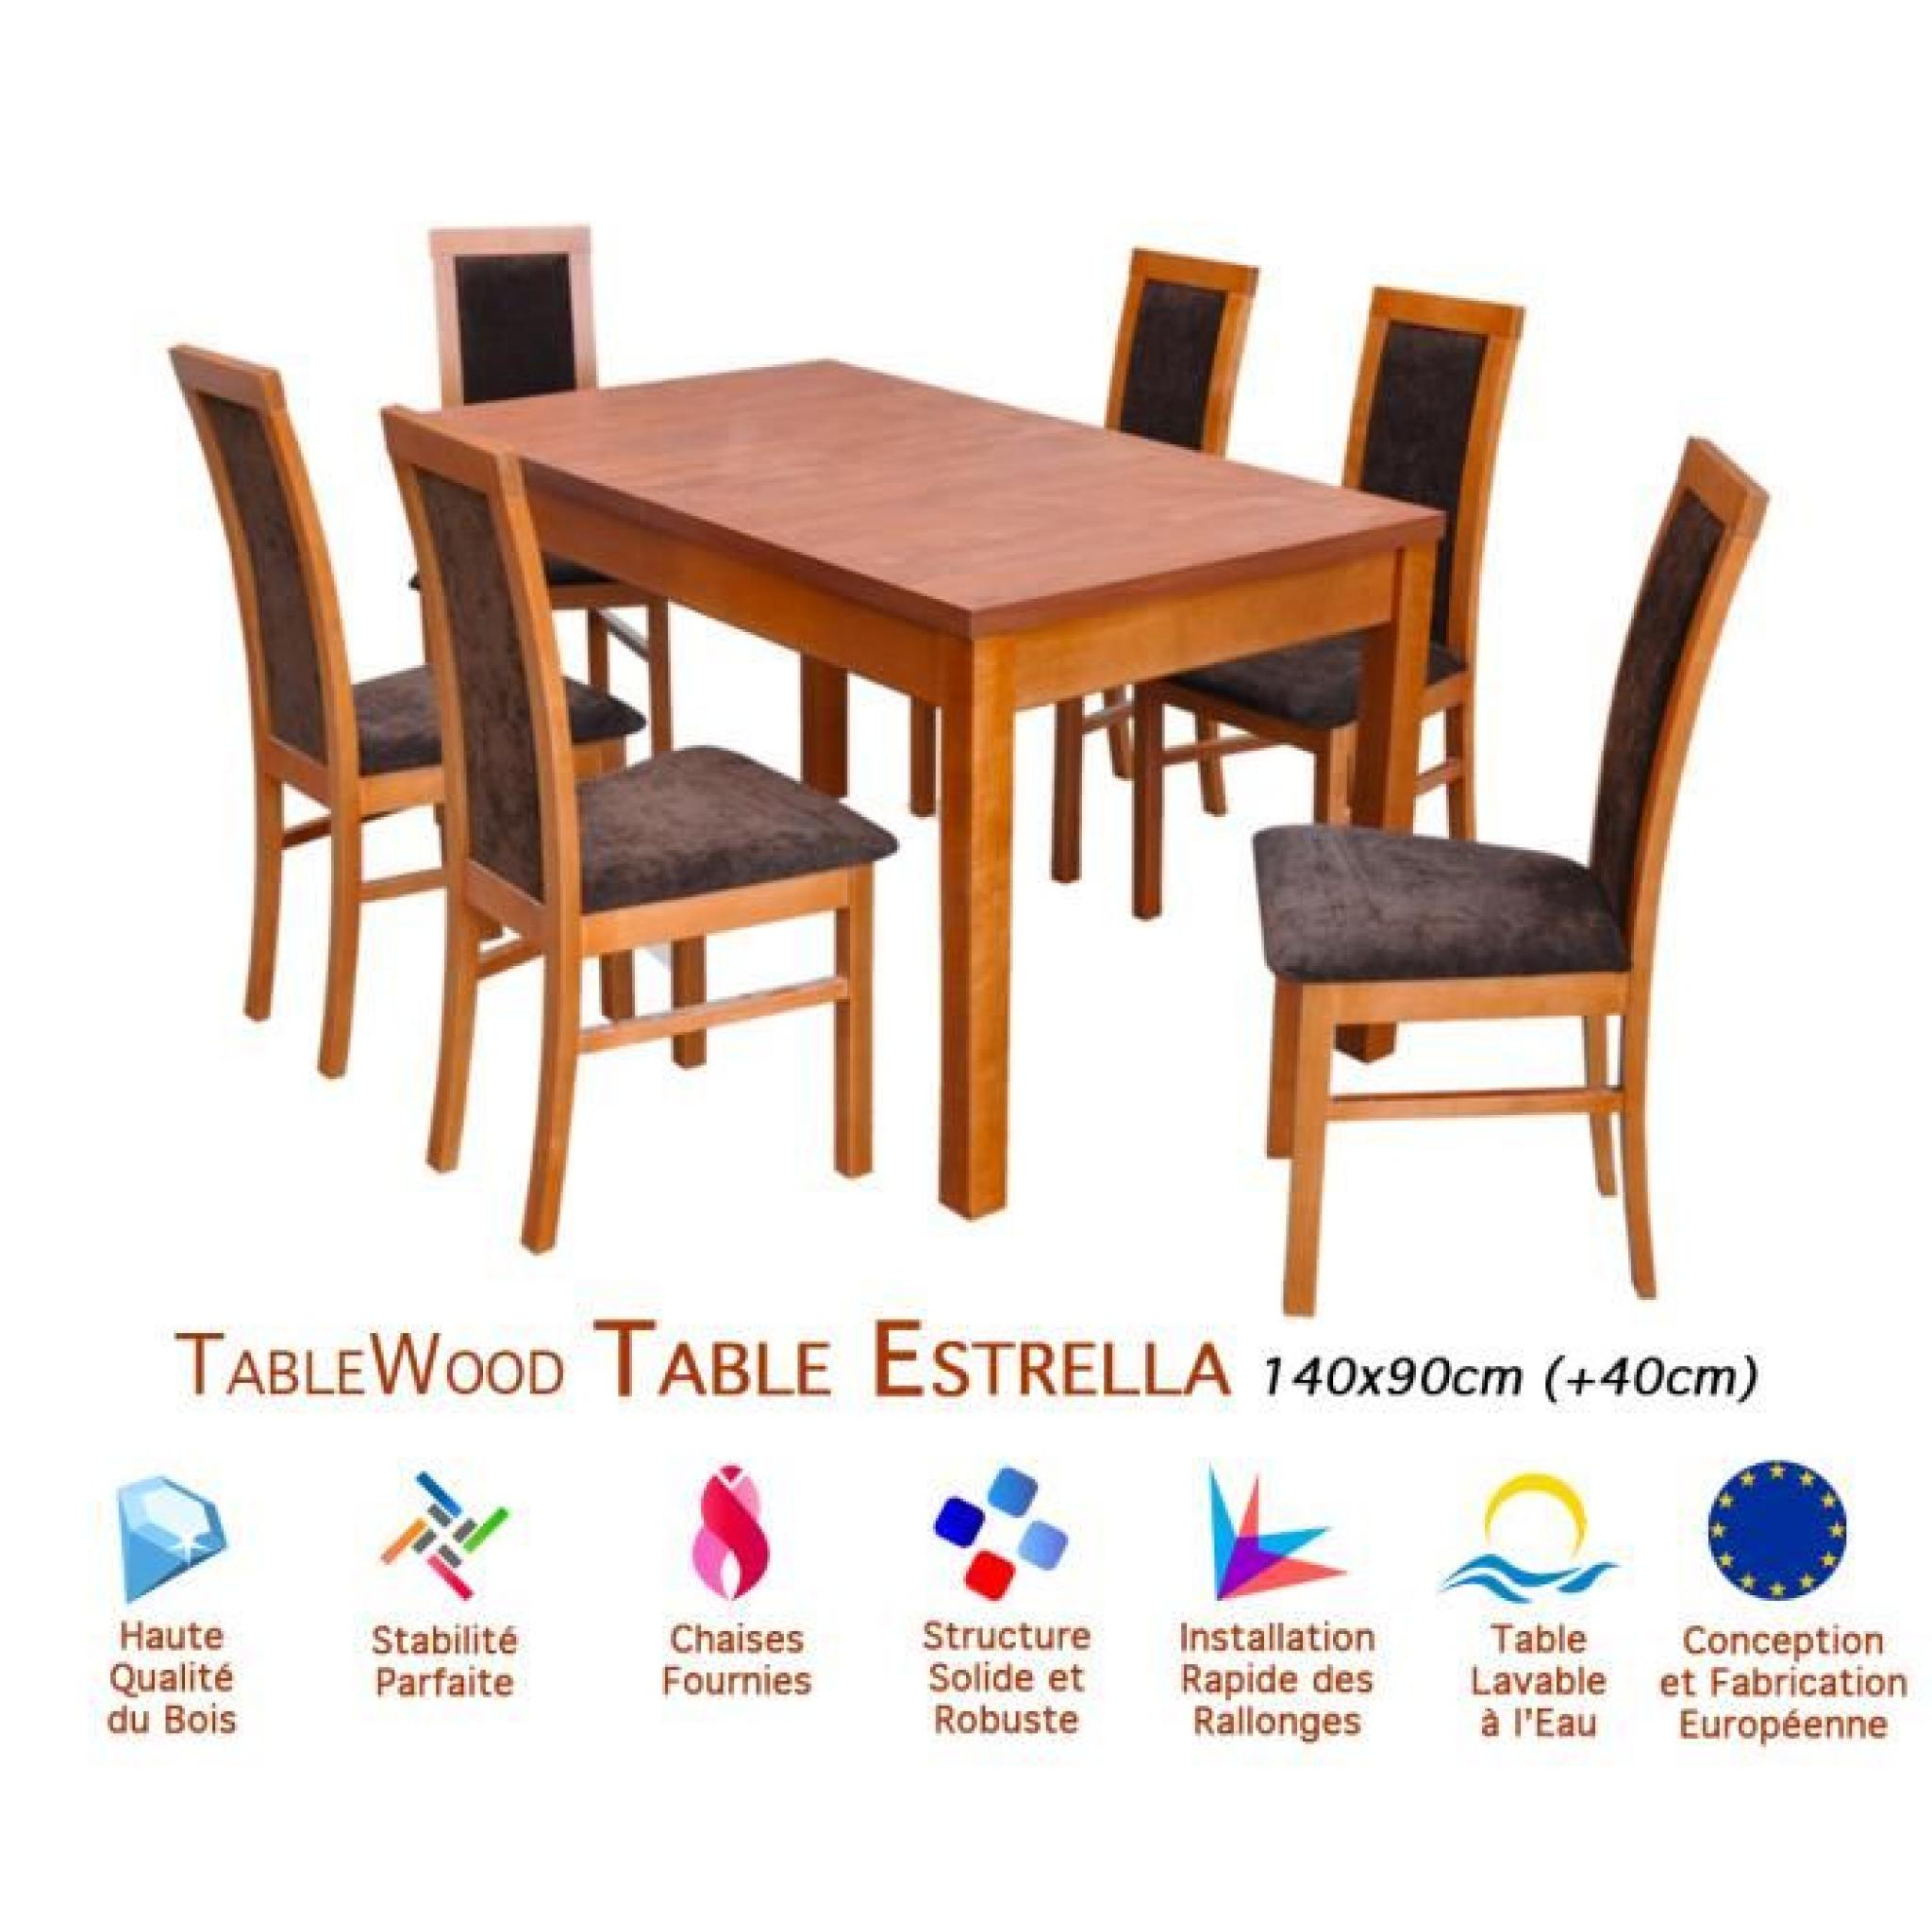 Ensemble table extensible et 6 chaises tablewood estrella for Ensemble table chaise salle manger pas cher